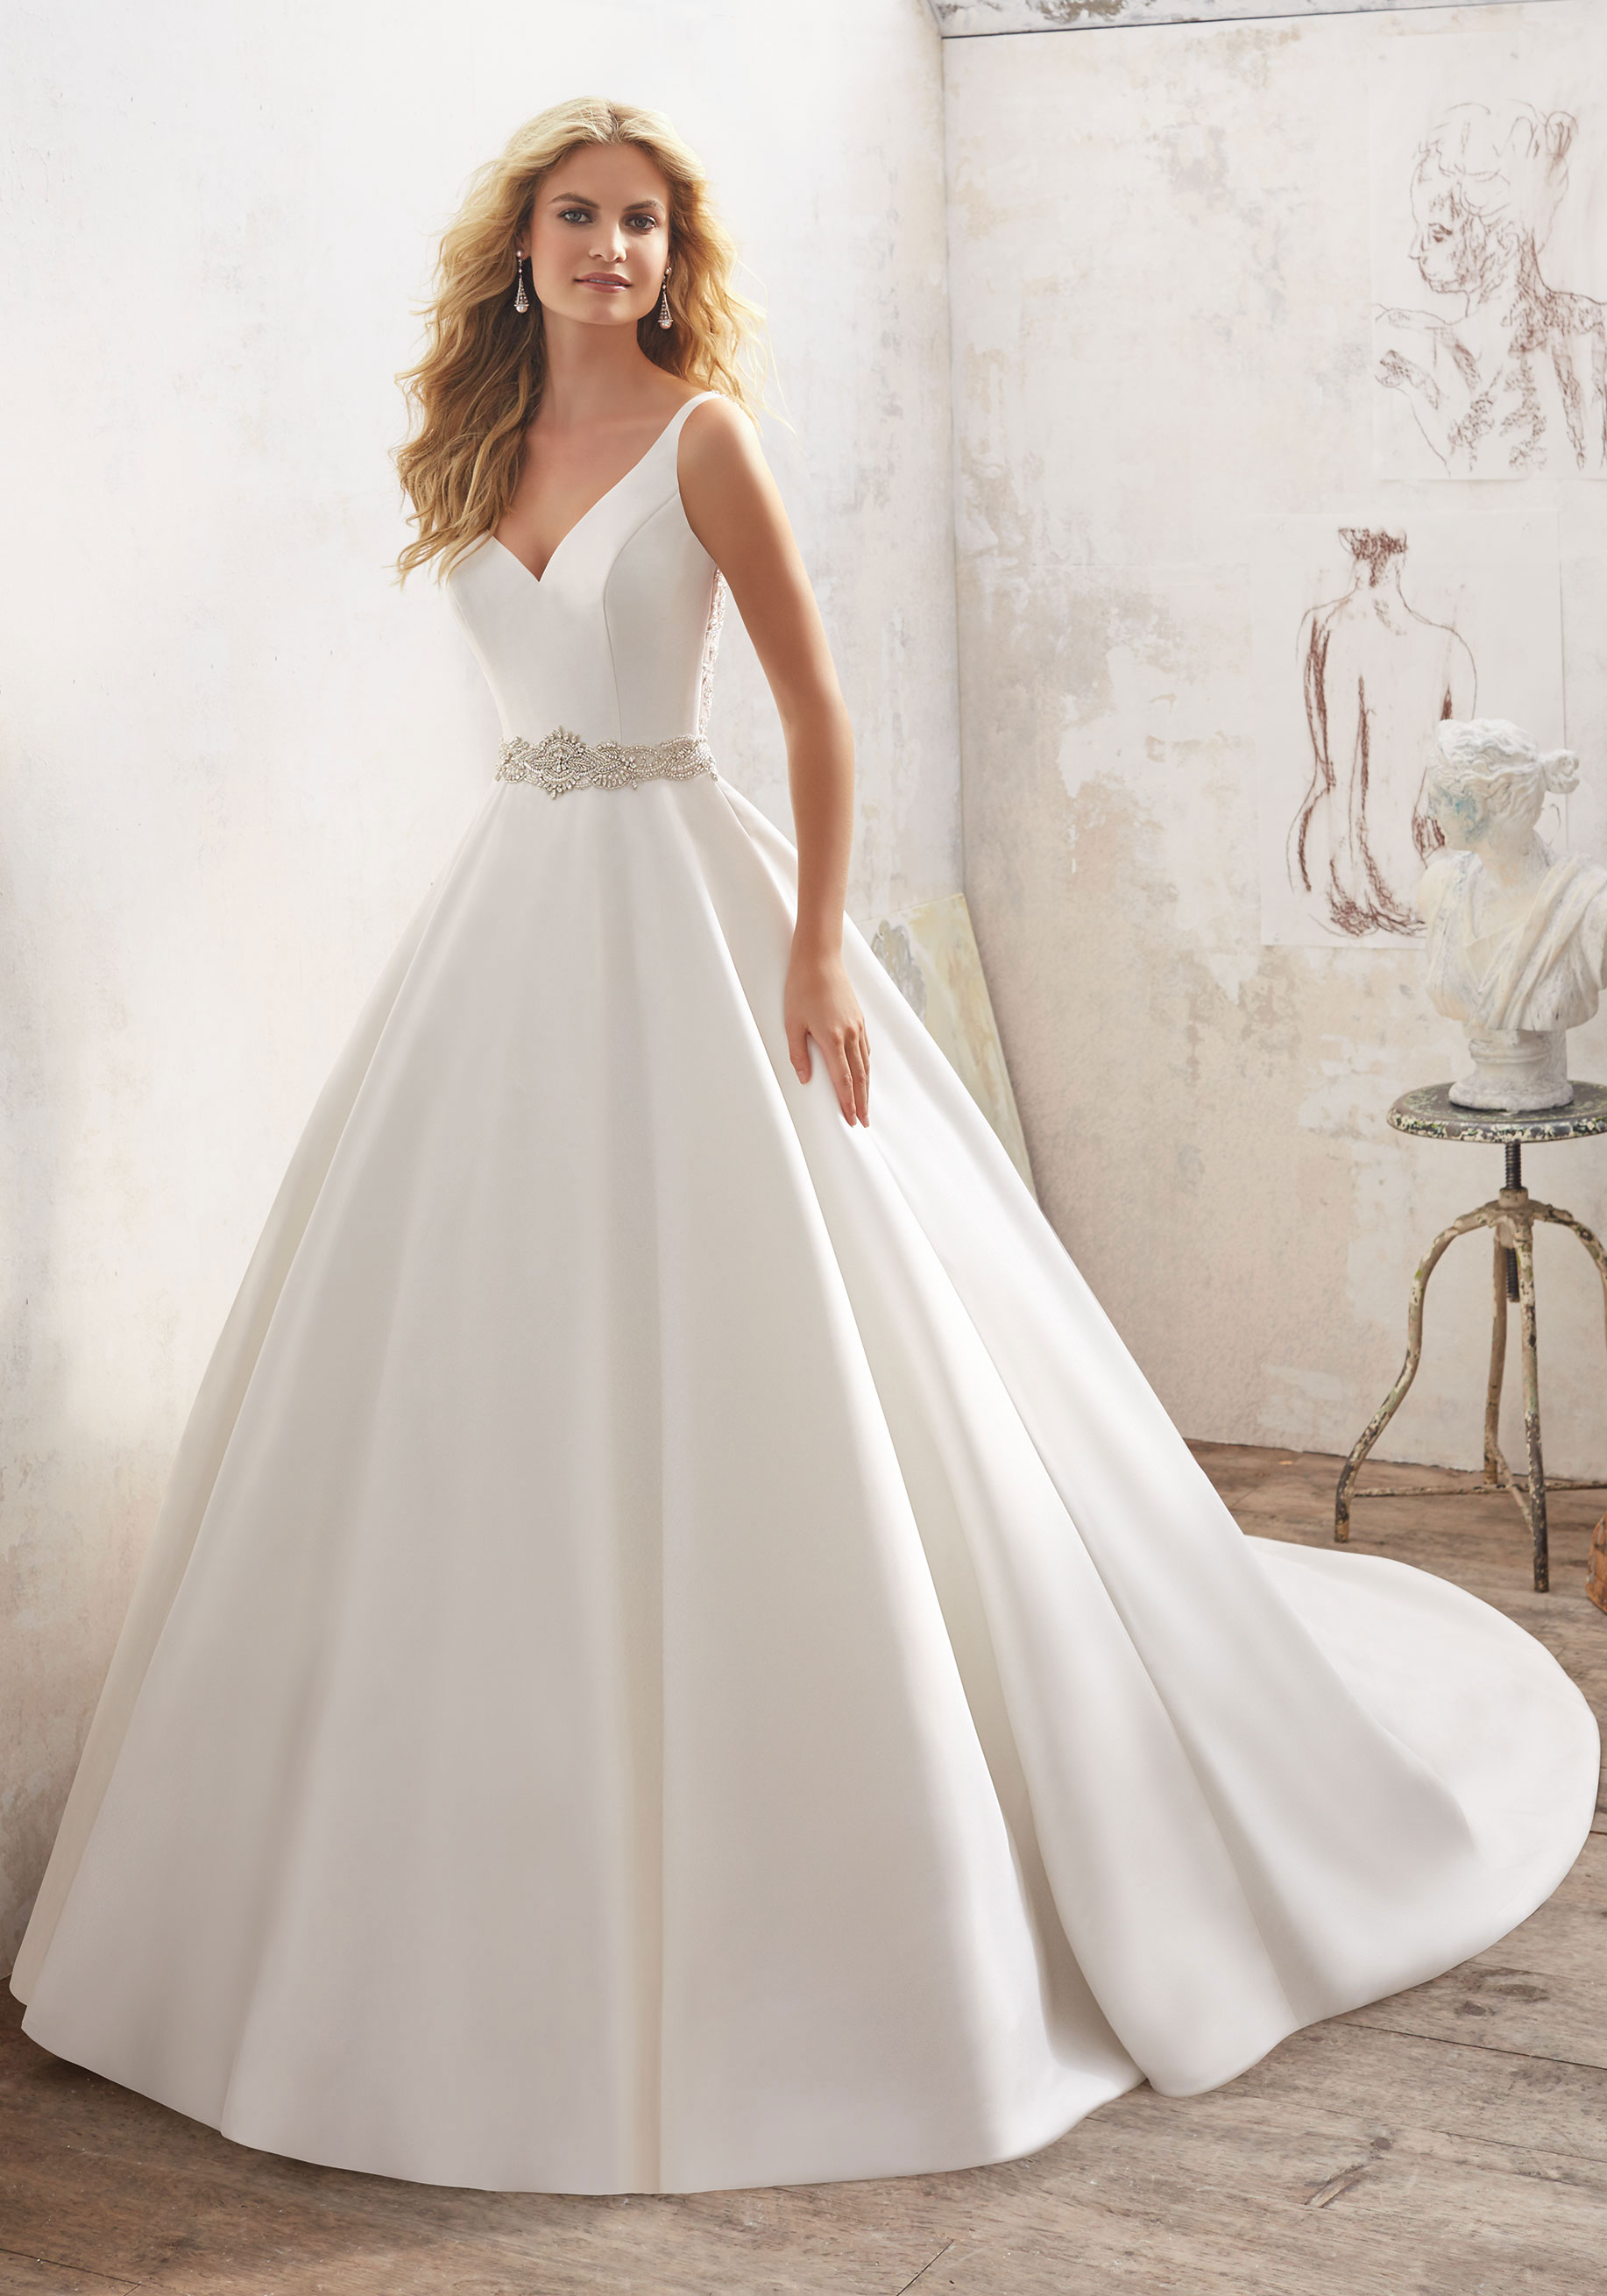 Morilee Blu - In the Morilee by Madeline Gardner's Blu Collection, the designs find the perfect harmony between classic and contemporary. So while you've always pictured yourself in that beautiful white dress, there's no reason you can't blend the newest trends or styles while you're at it.